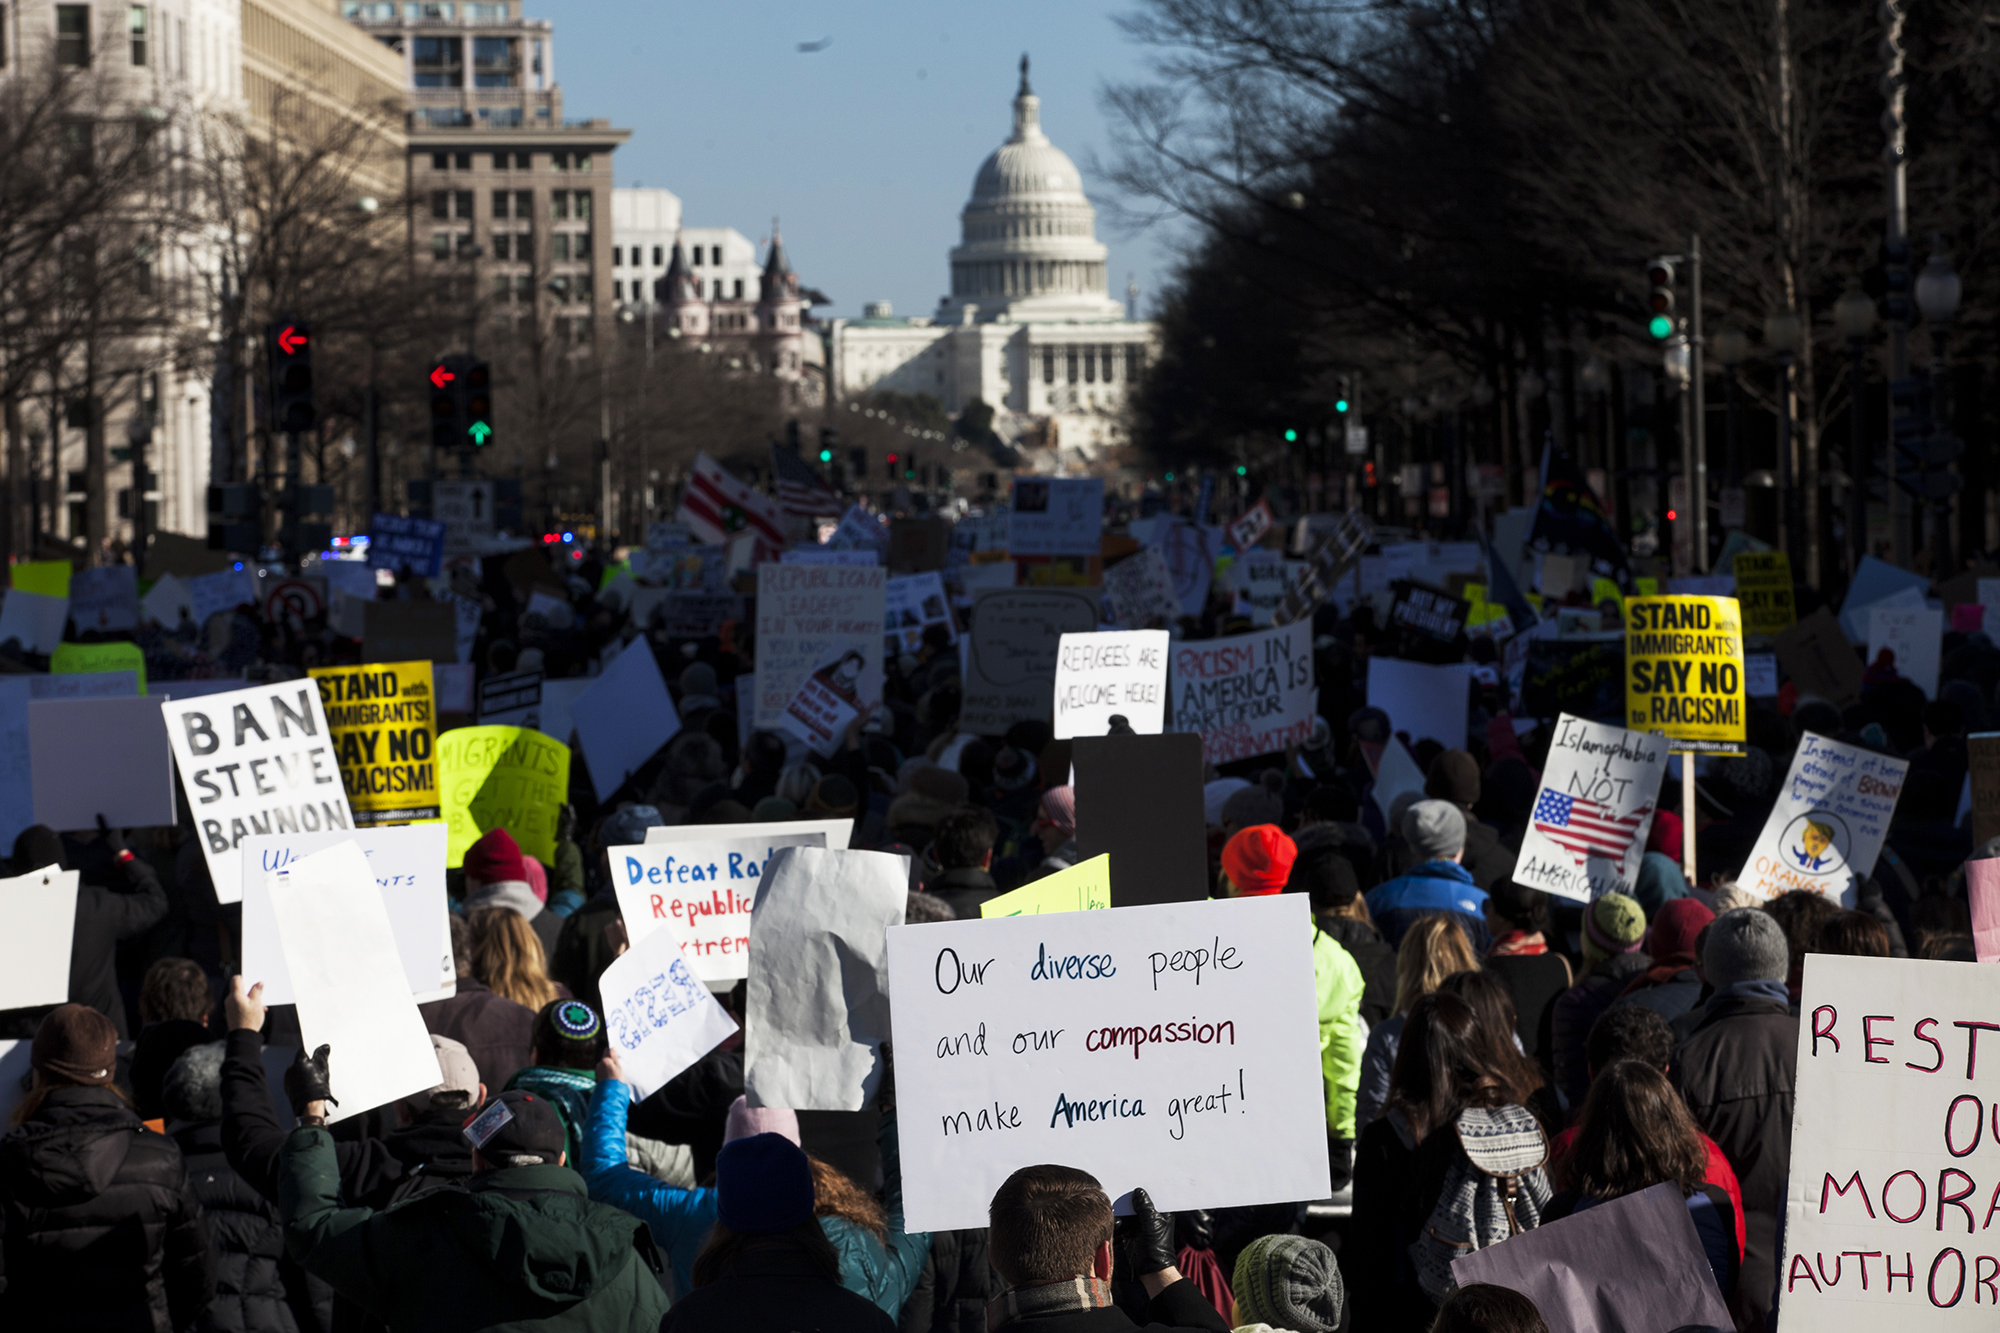 Demonstrators march from the White House to the Capitol Building, on Feb. 4, 2017 in Washington, D.C.